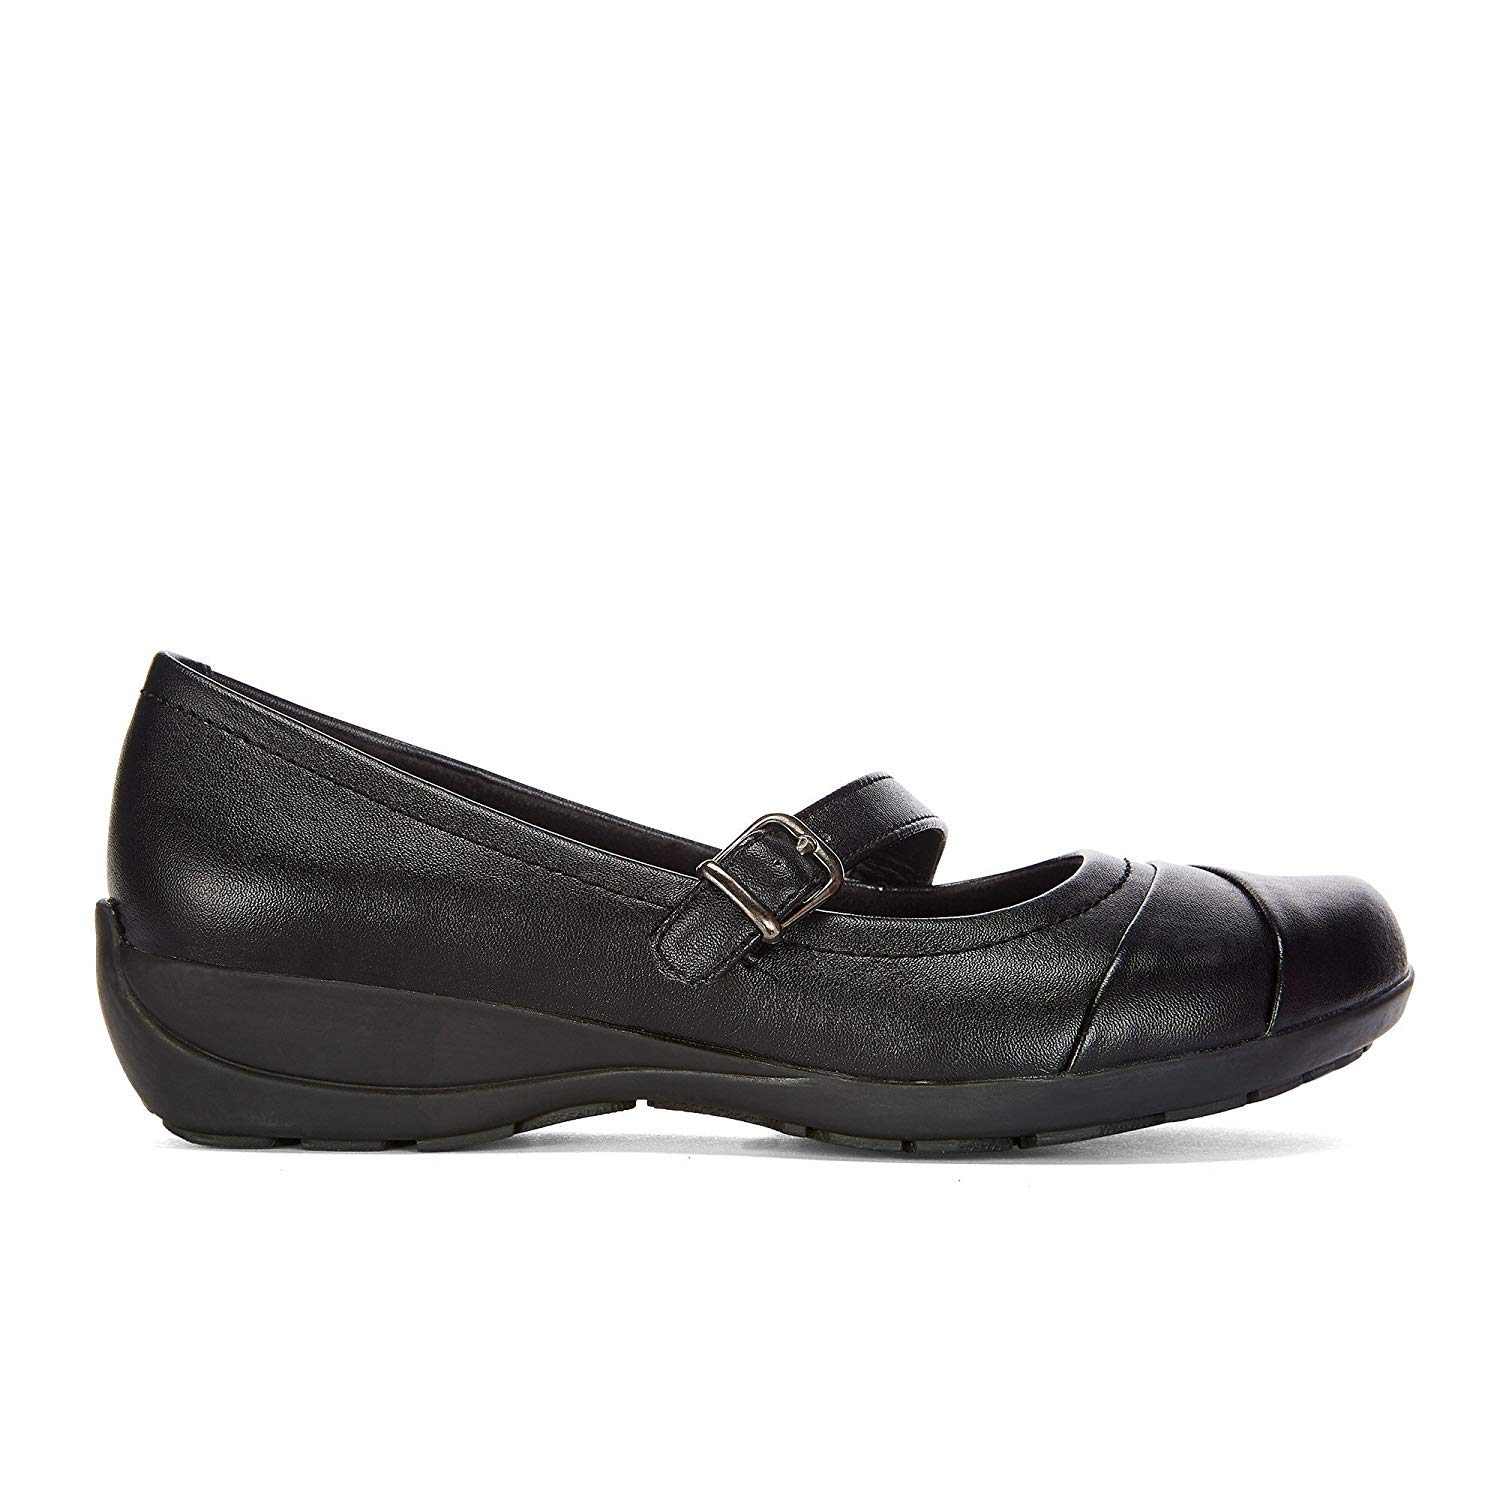 Womens No-Slip Vegan Leather Mary Jane Shoes with Memory Foam Insole